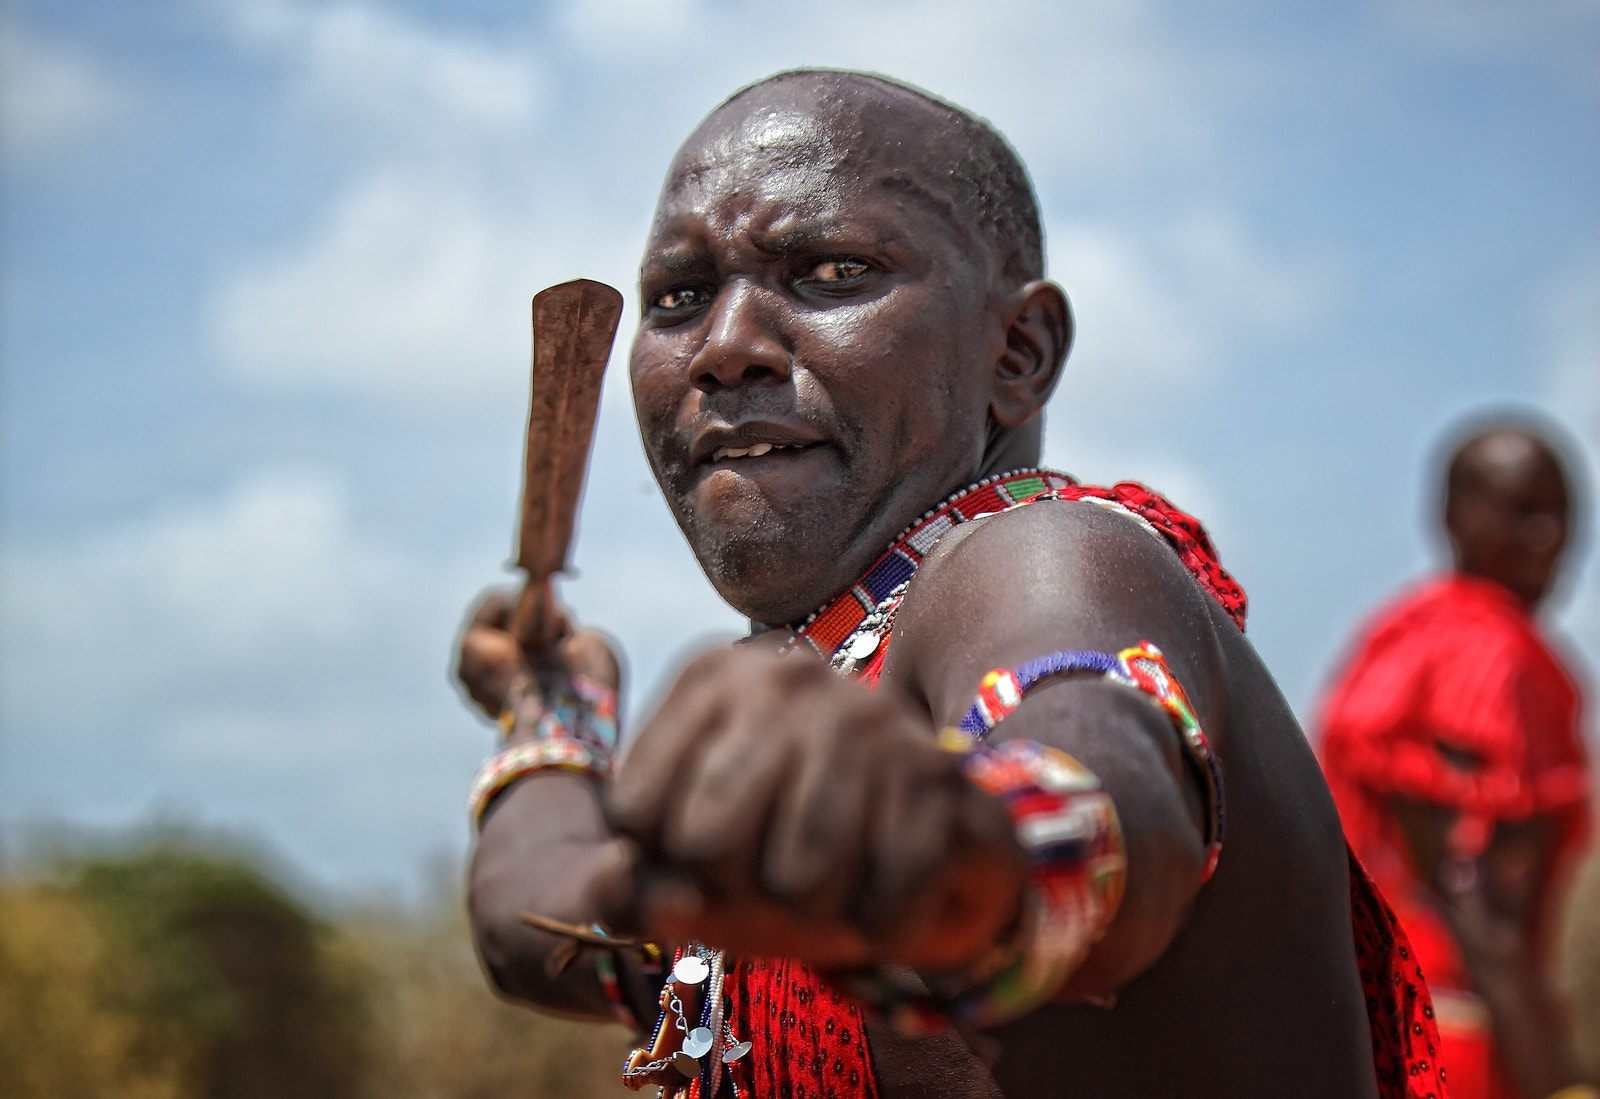 Photograph Only Maasai by Giorgio Conti on 500px